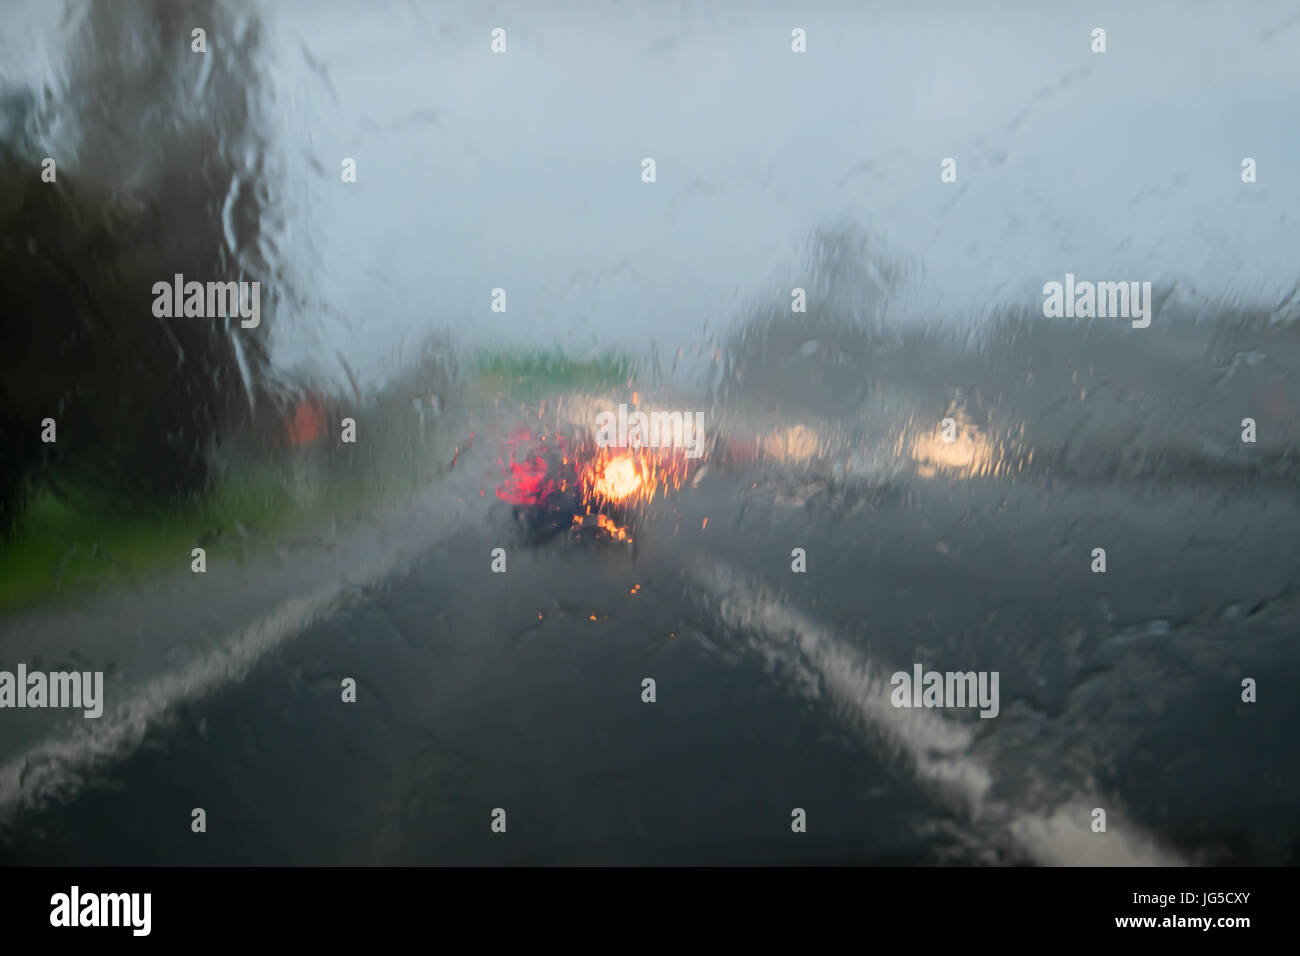 Driving with heavy rain on car windscreen on State Highway 1, Auckland, New Zealand, NZ - car in front is indicating - Stock Image